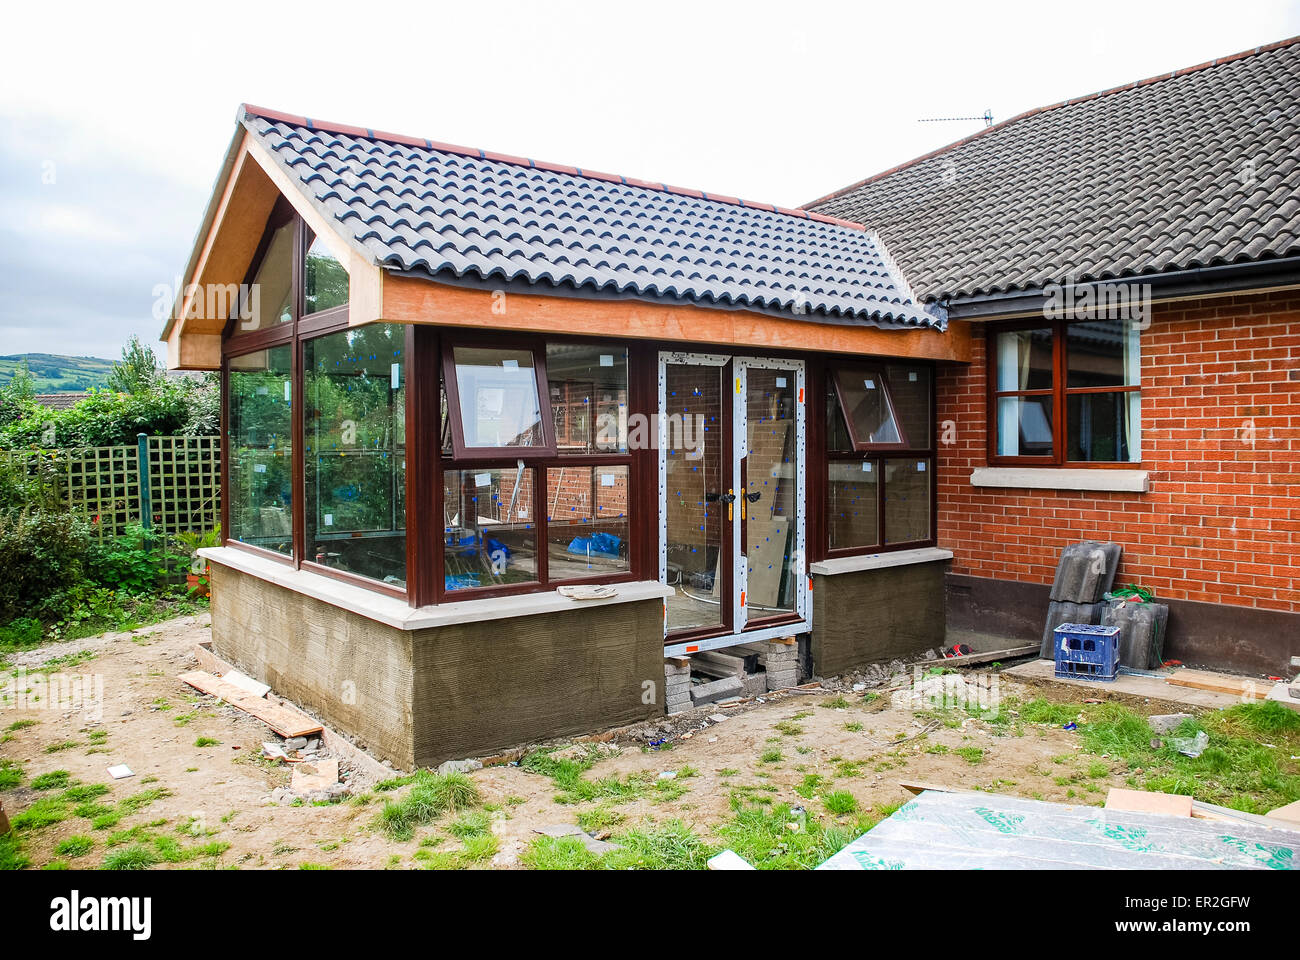 Sunroom extension being built onto a bungalow stock photo for Adding onto a manufactured home